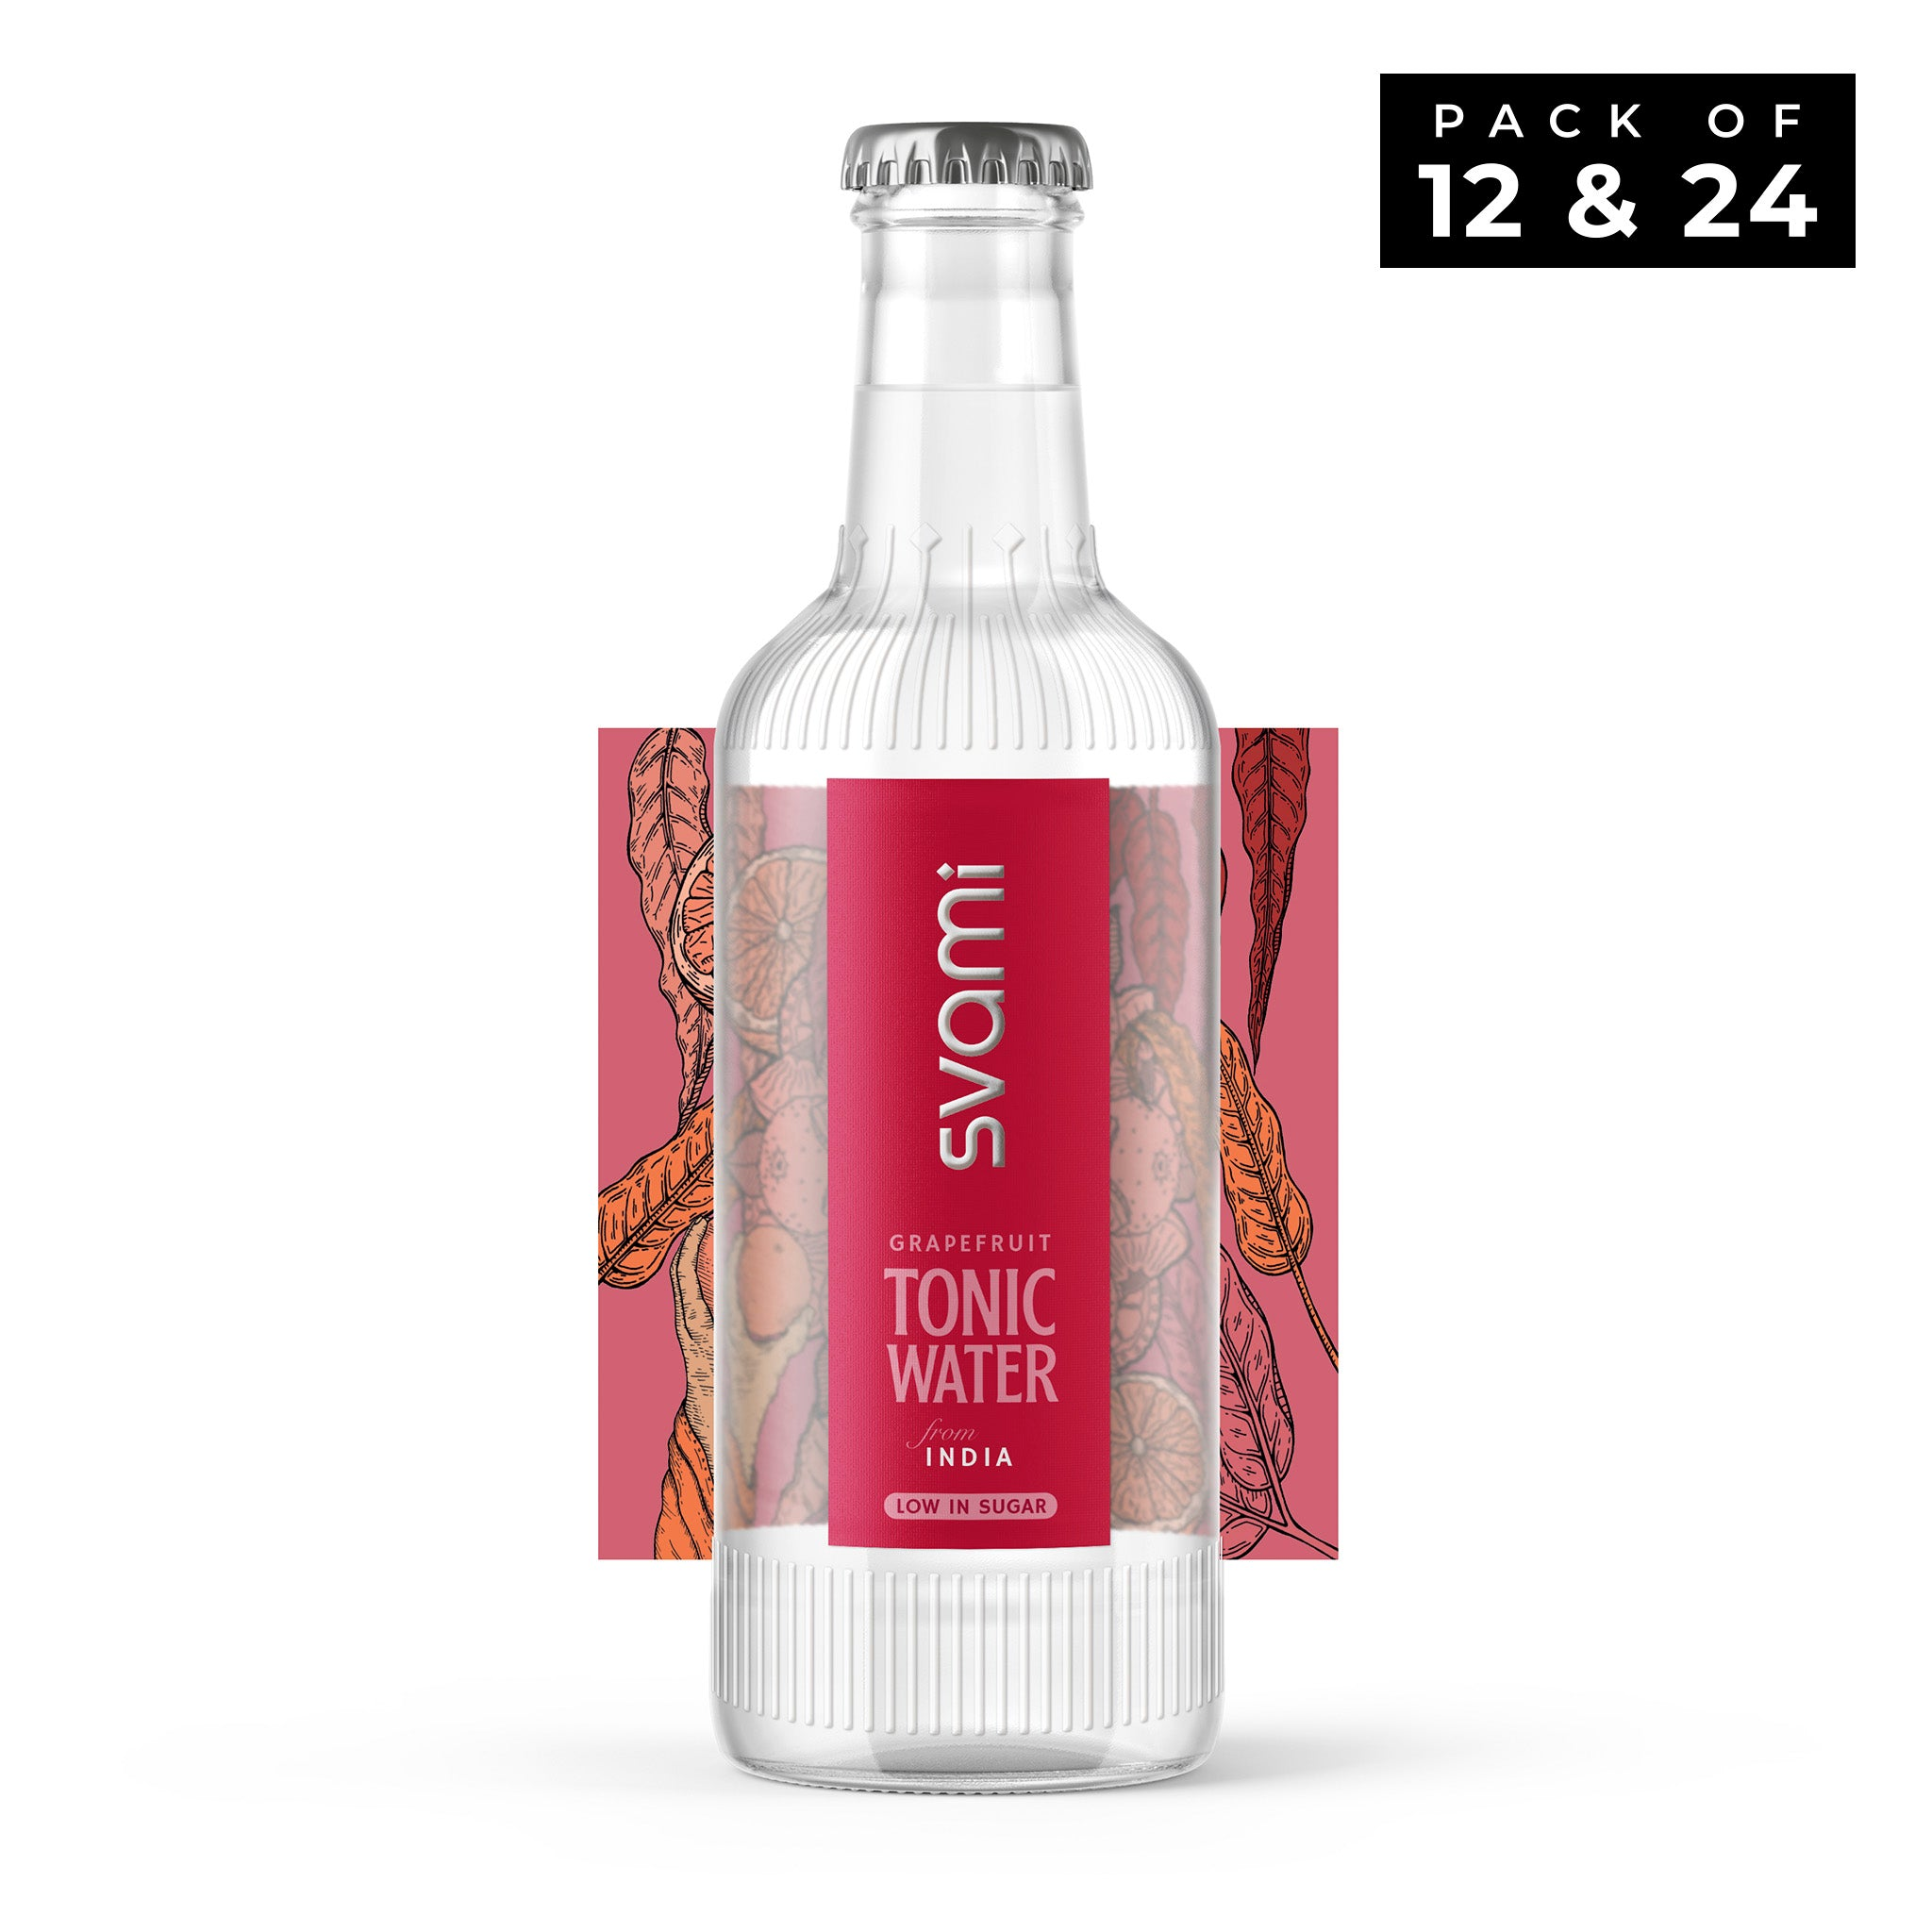 Svami Grapefruit Tonic Water